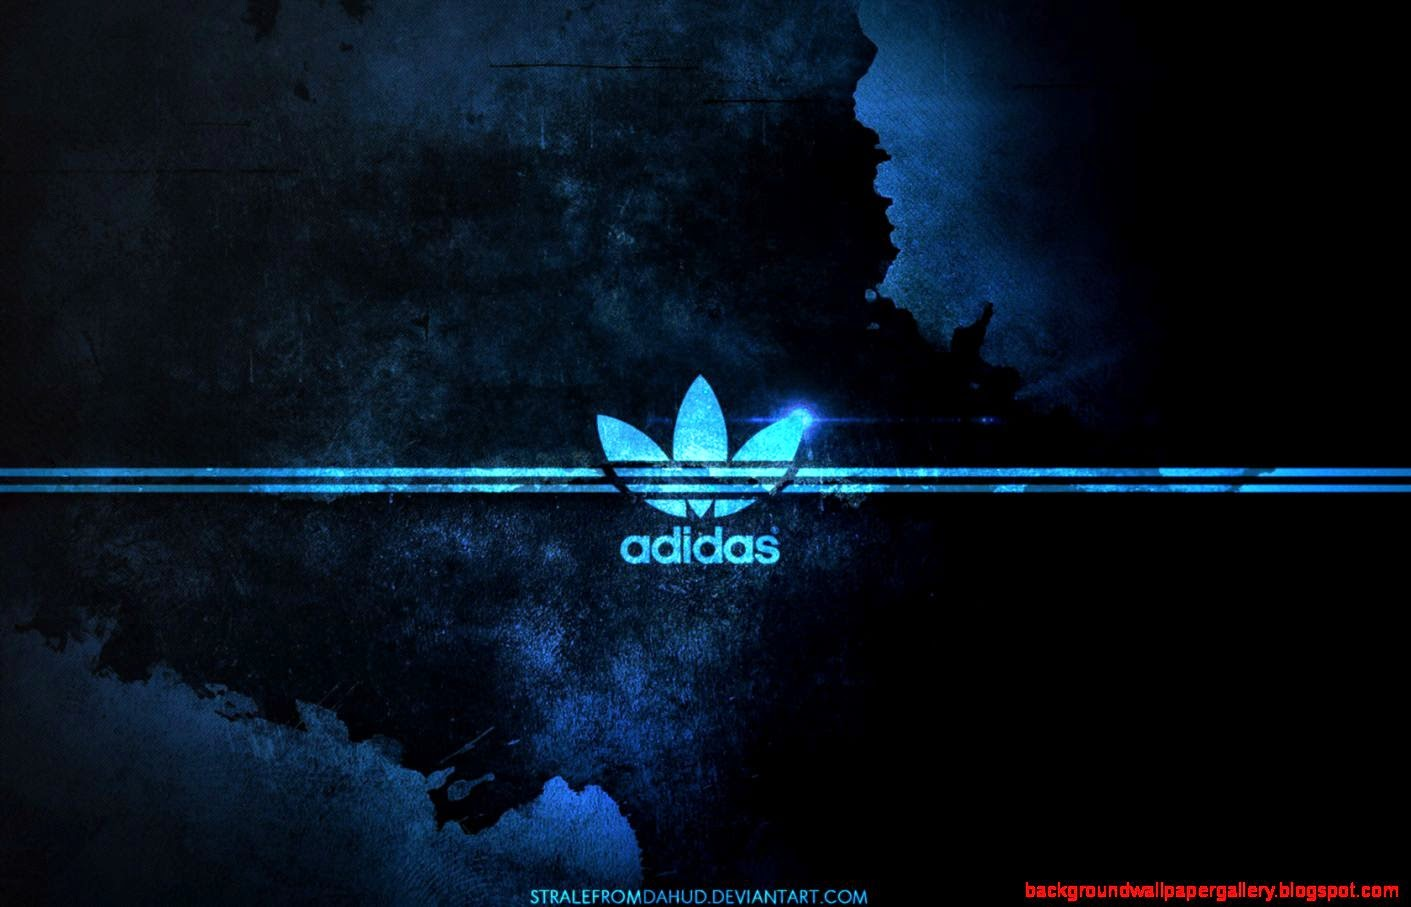 Adidas Logo Wallpapers Hd Blue | Background Wallpaper Gallery